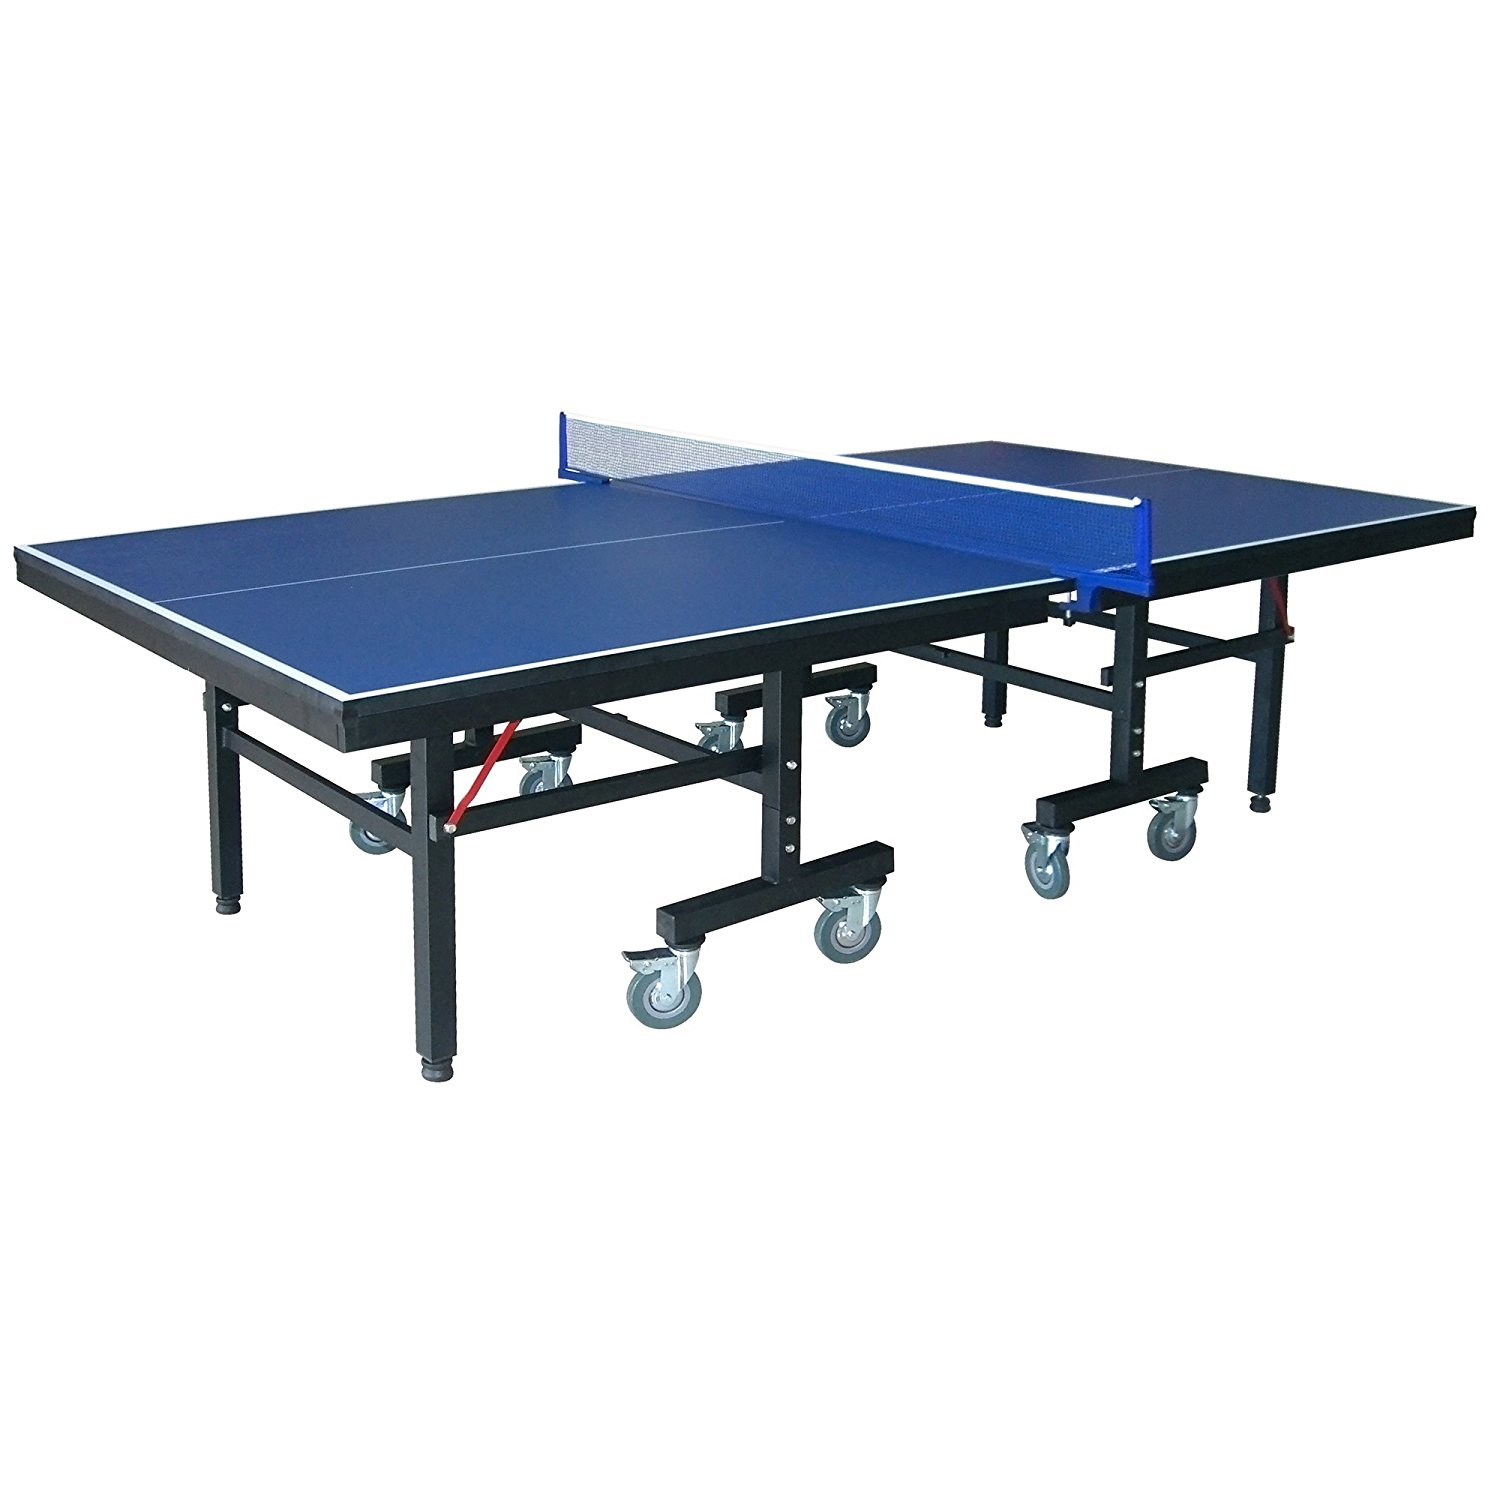 Hathaway Professional Grade Table Tennis Table